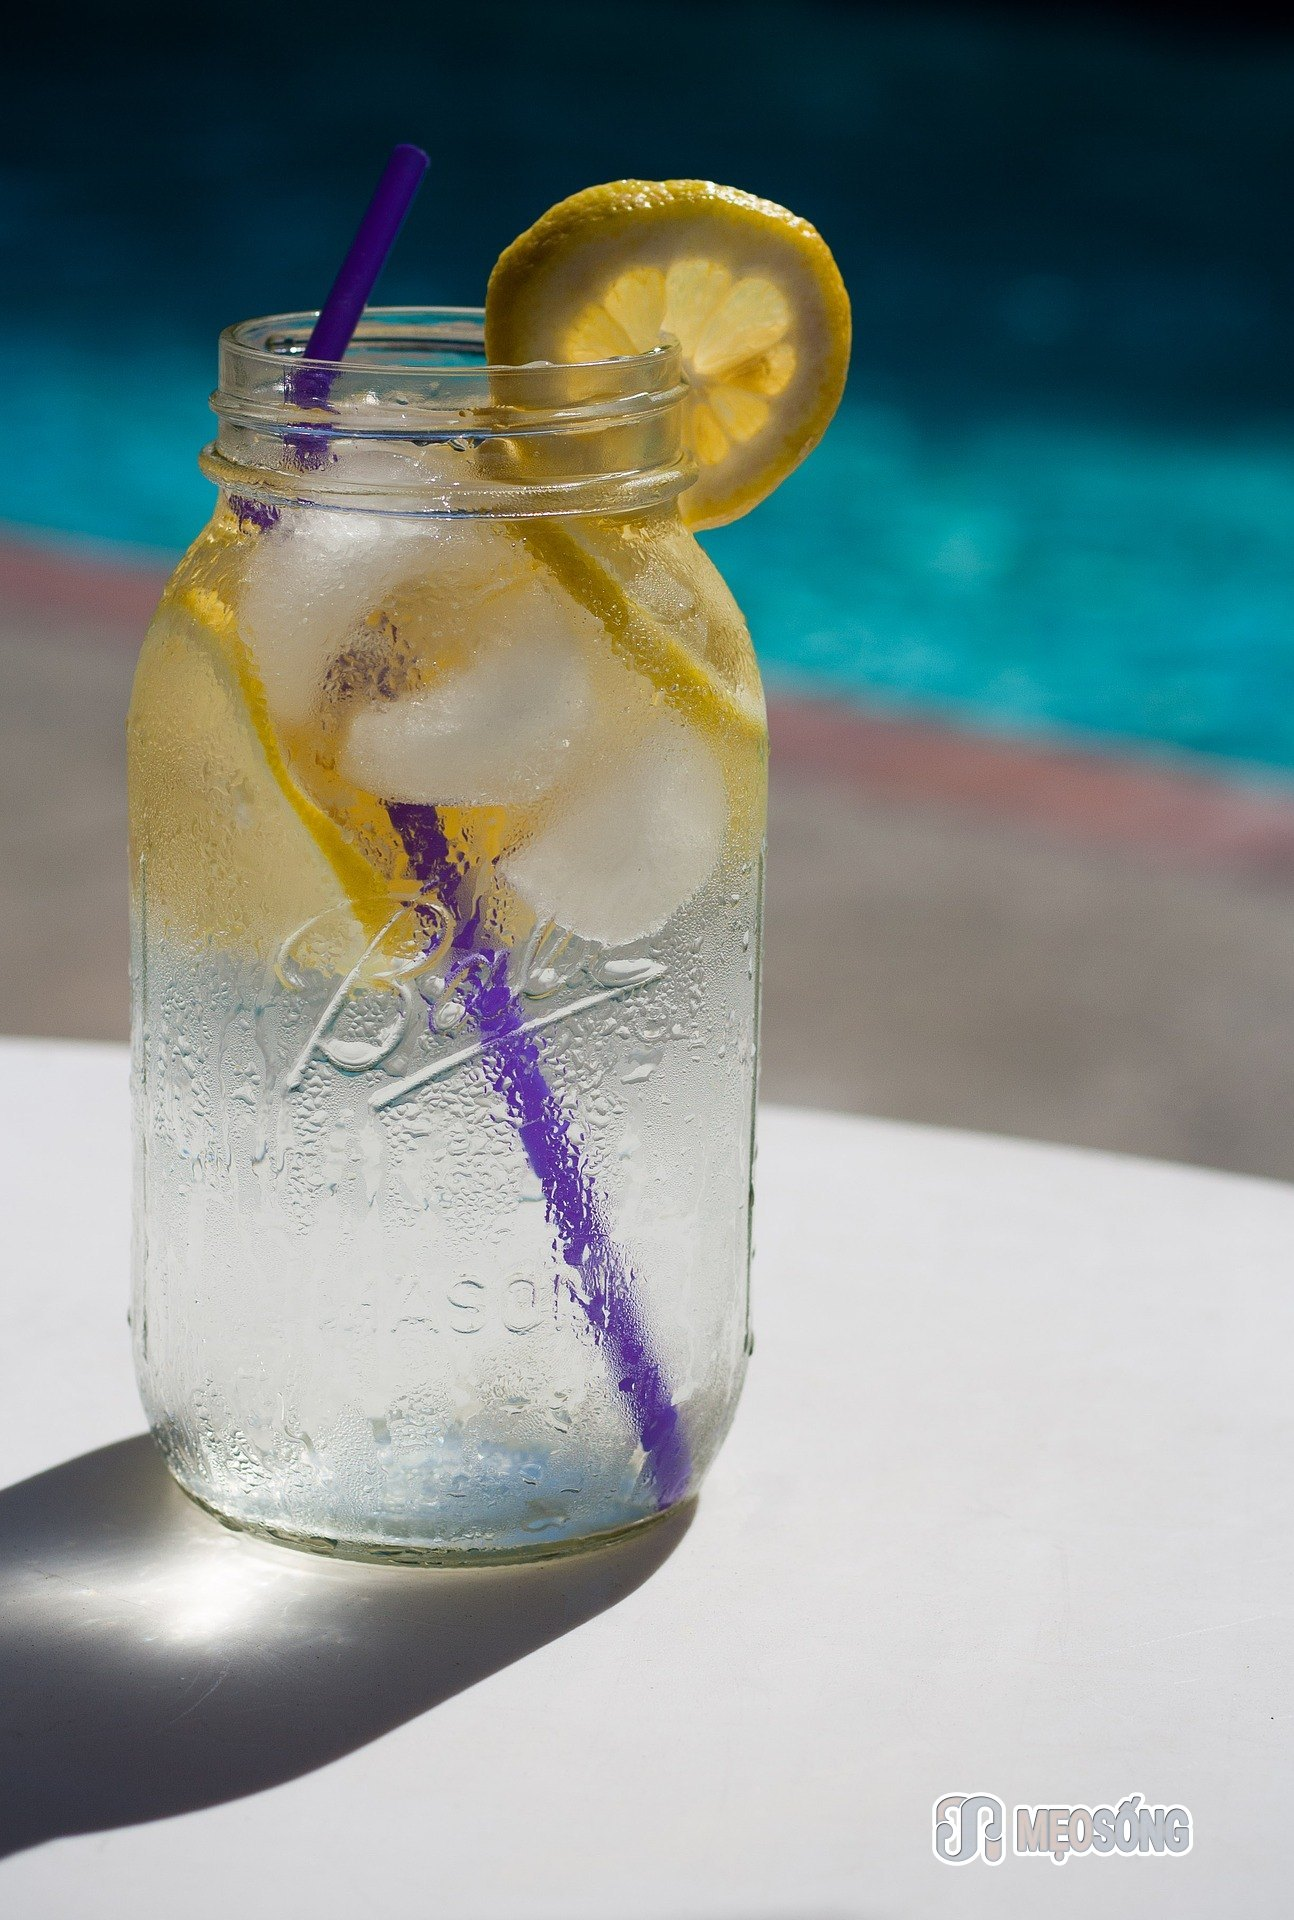 Lemon water - great for detox